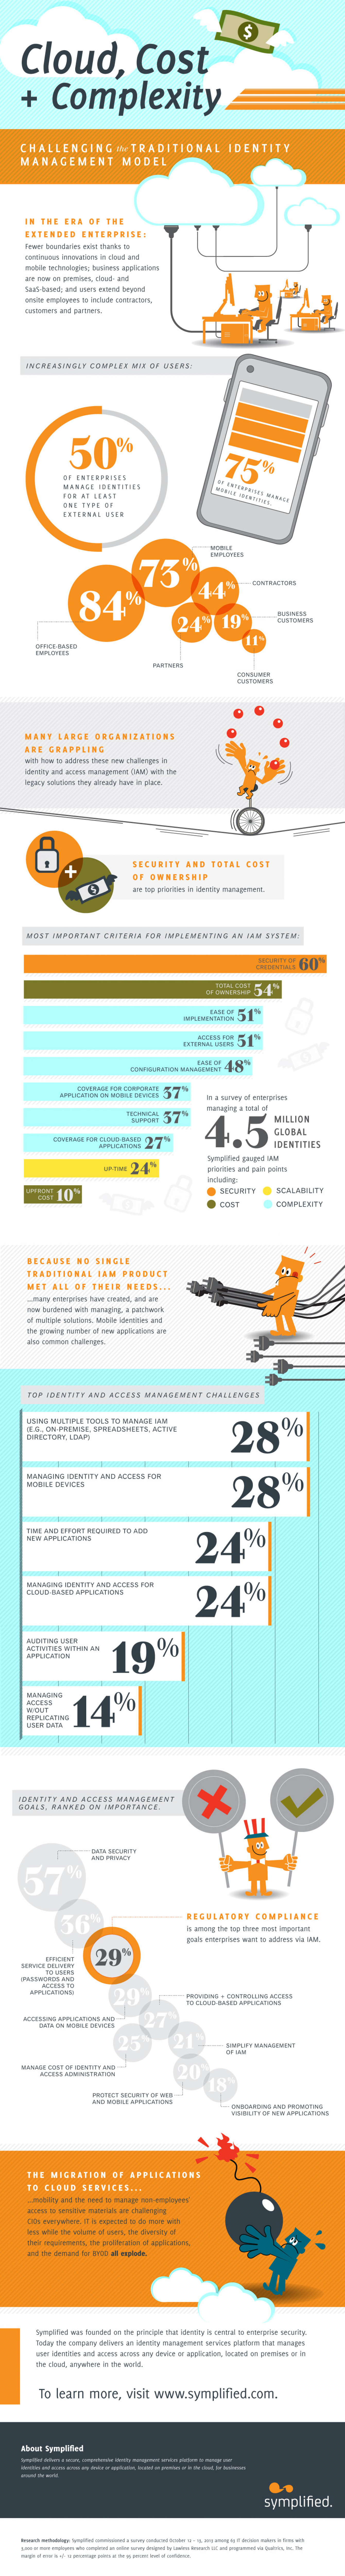 The Cost and Complexity of Managing a Mix of Identities Infographic